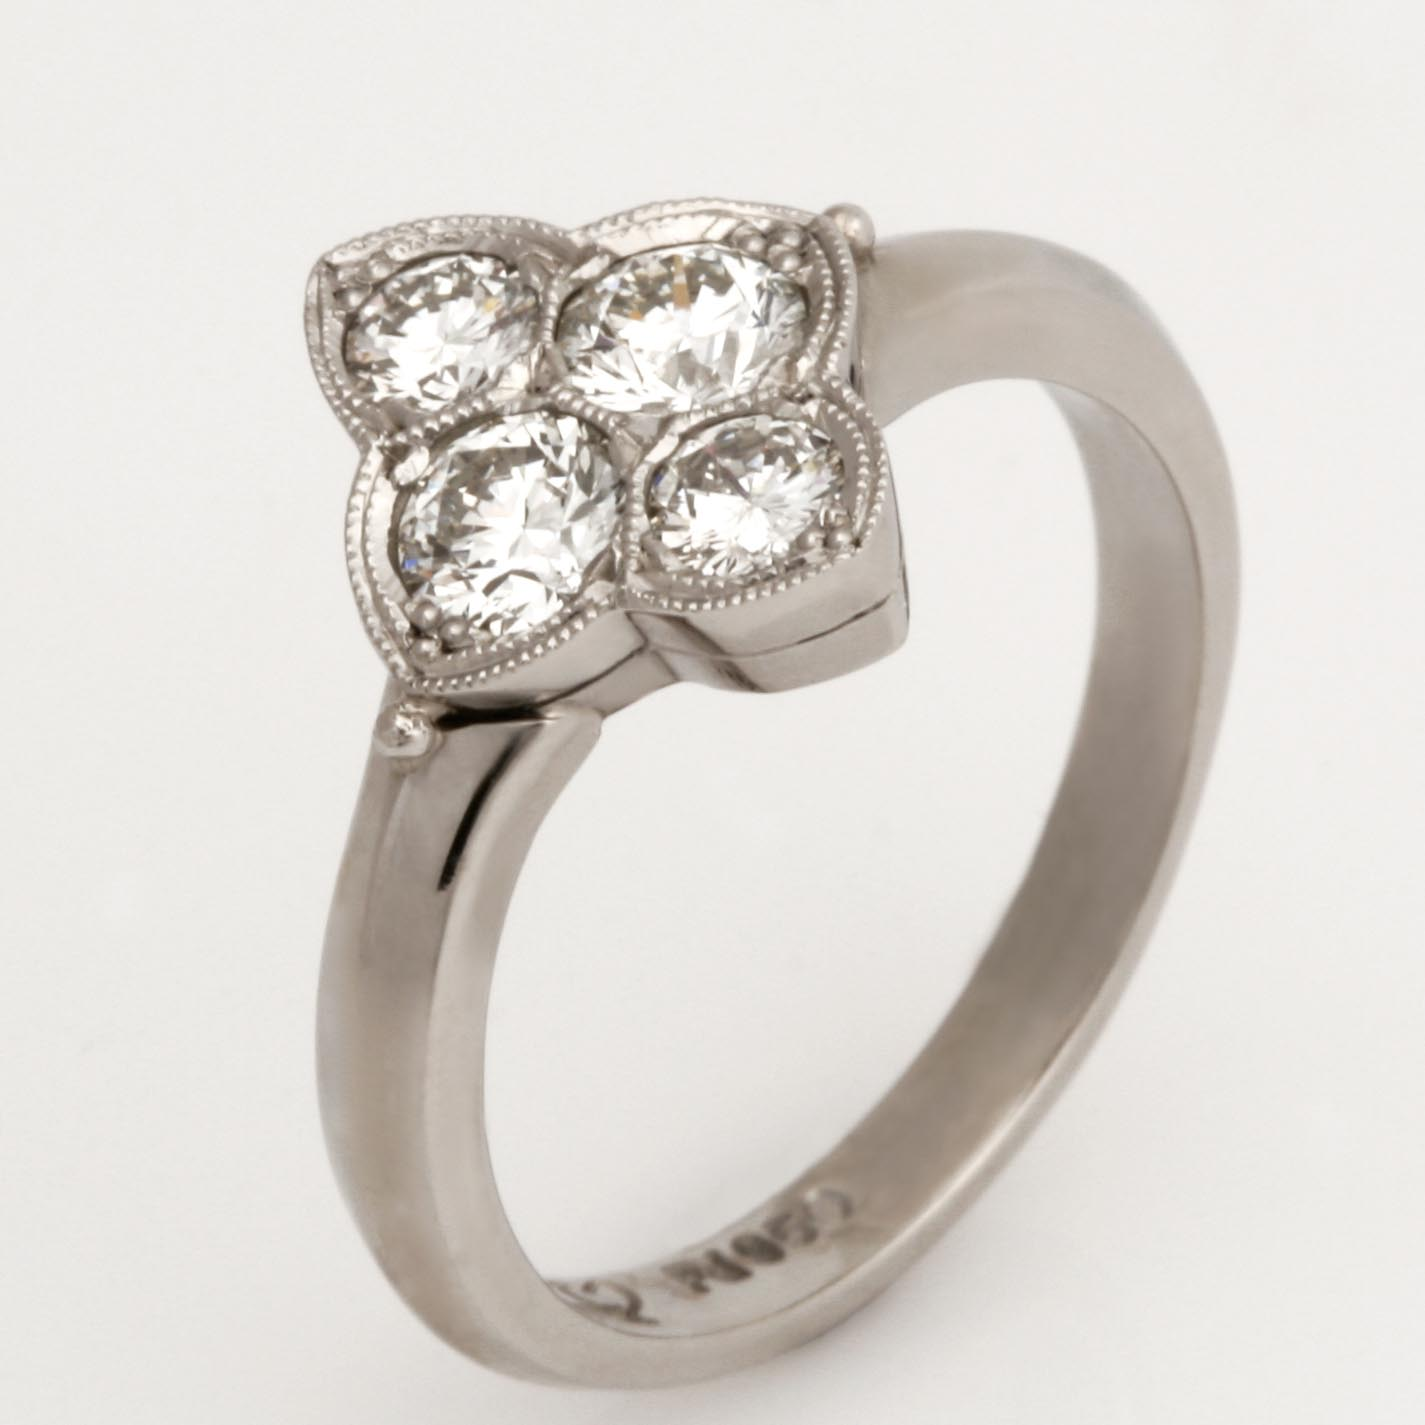 Handmade ladies palladium brilliant cut diamond ring featuring a millgrain edging.